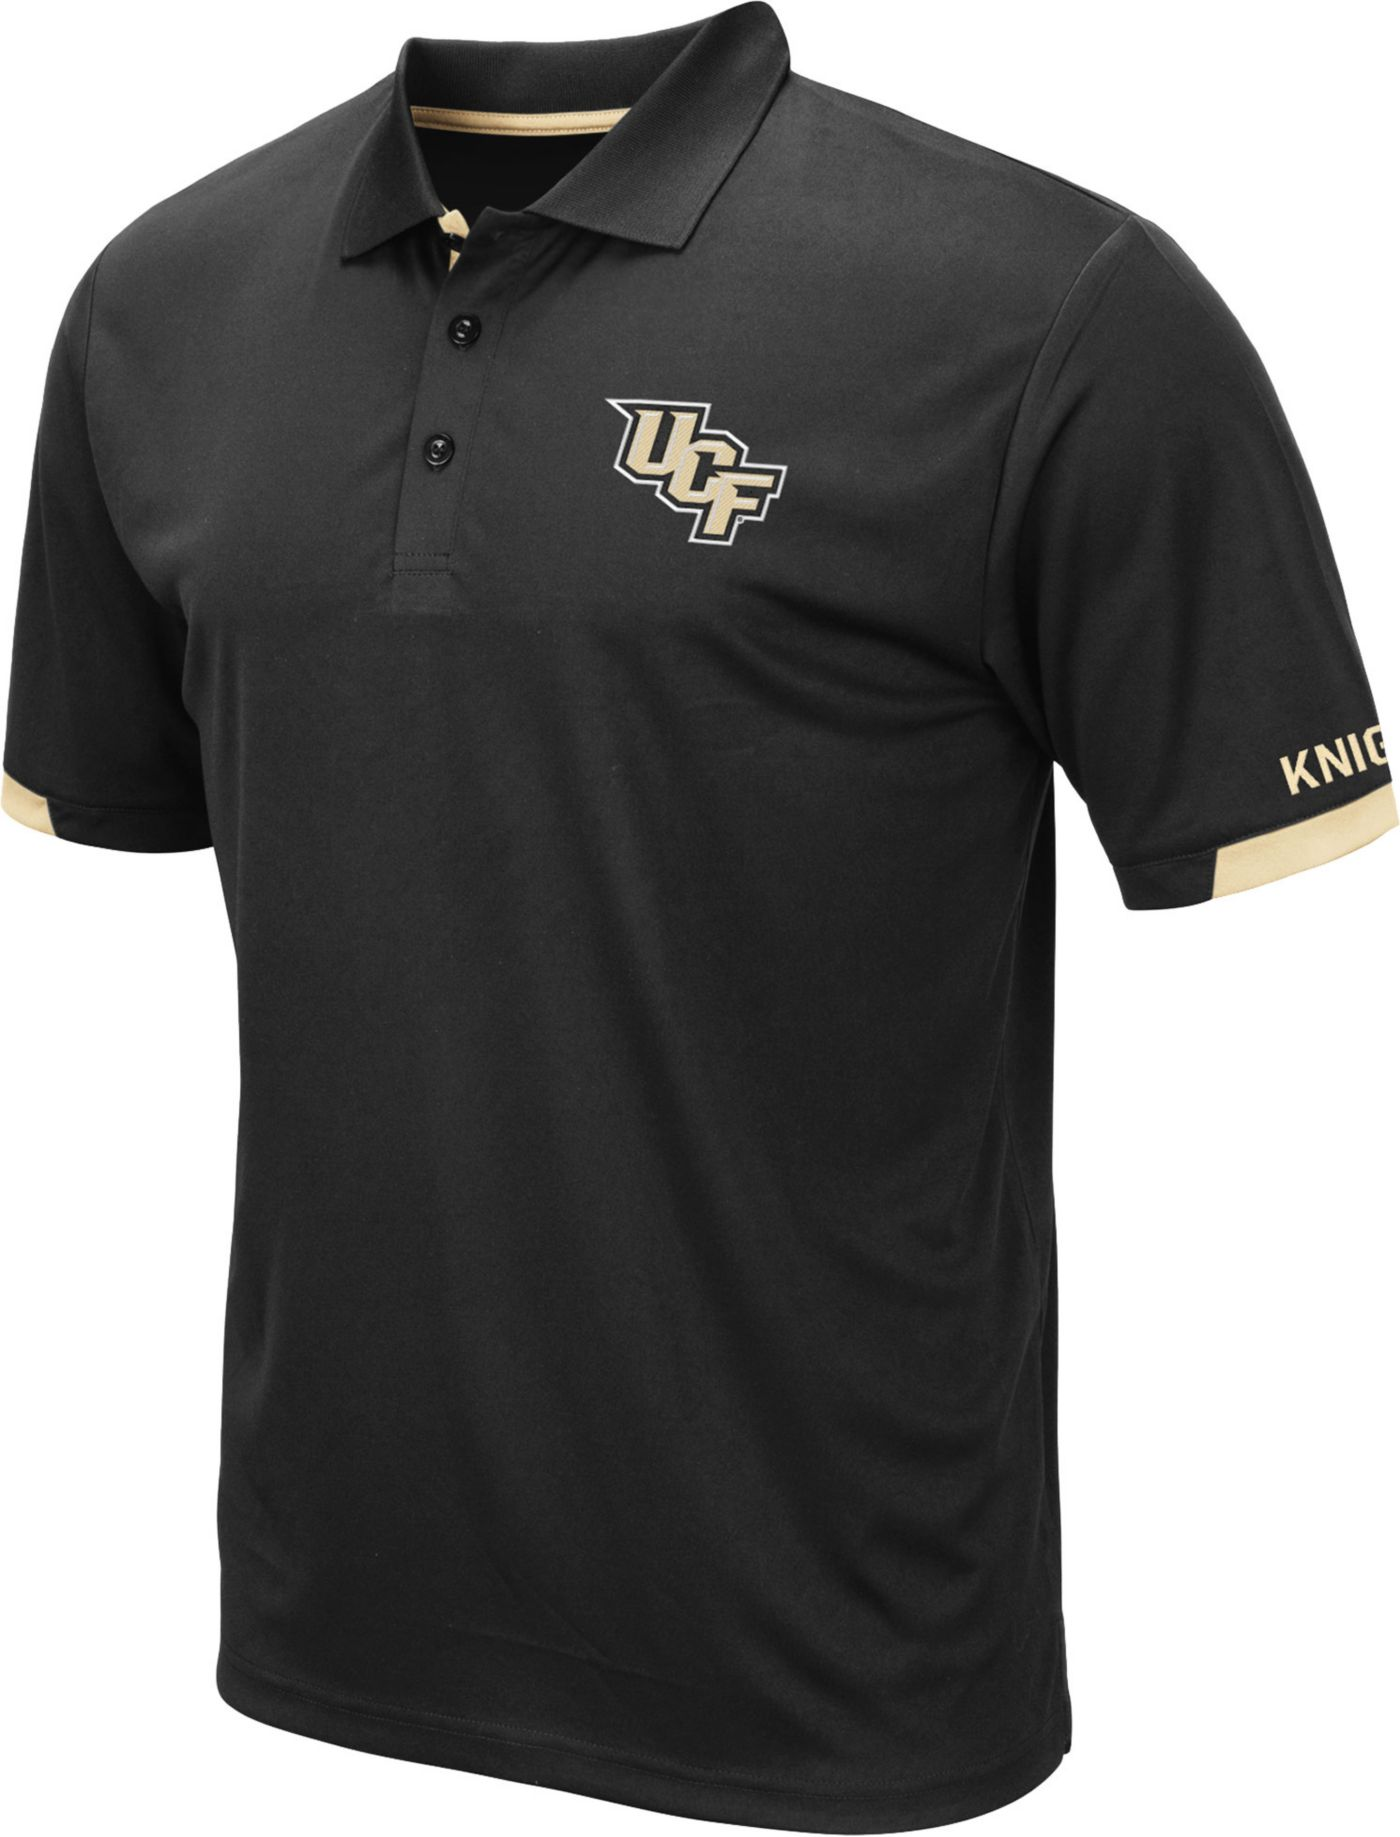 Colosseum Men's UCF Knights Fairway Black Polo